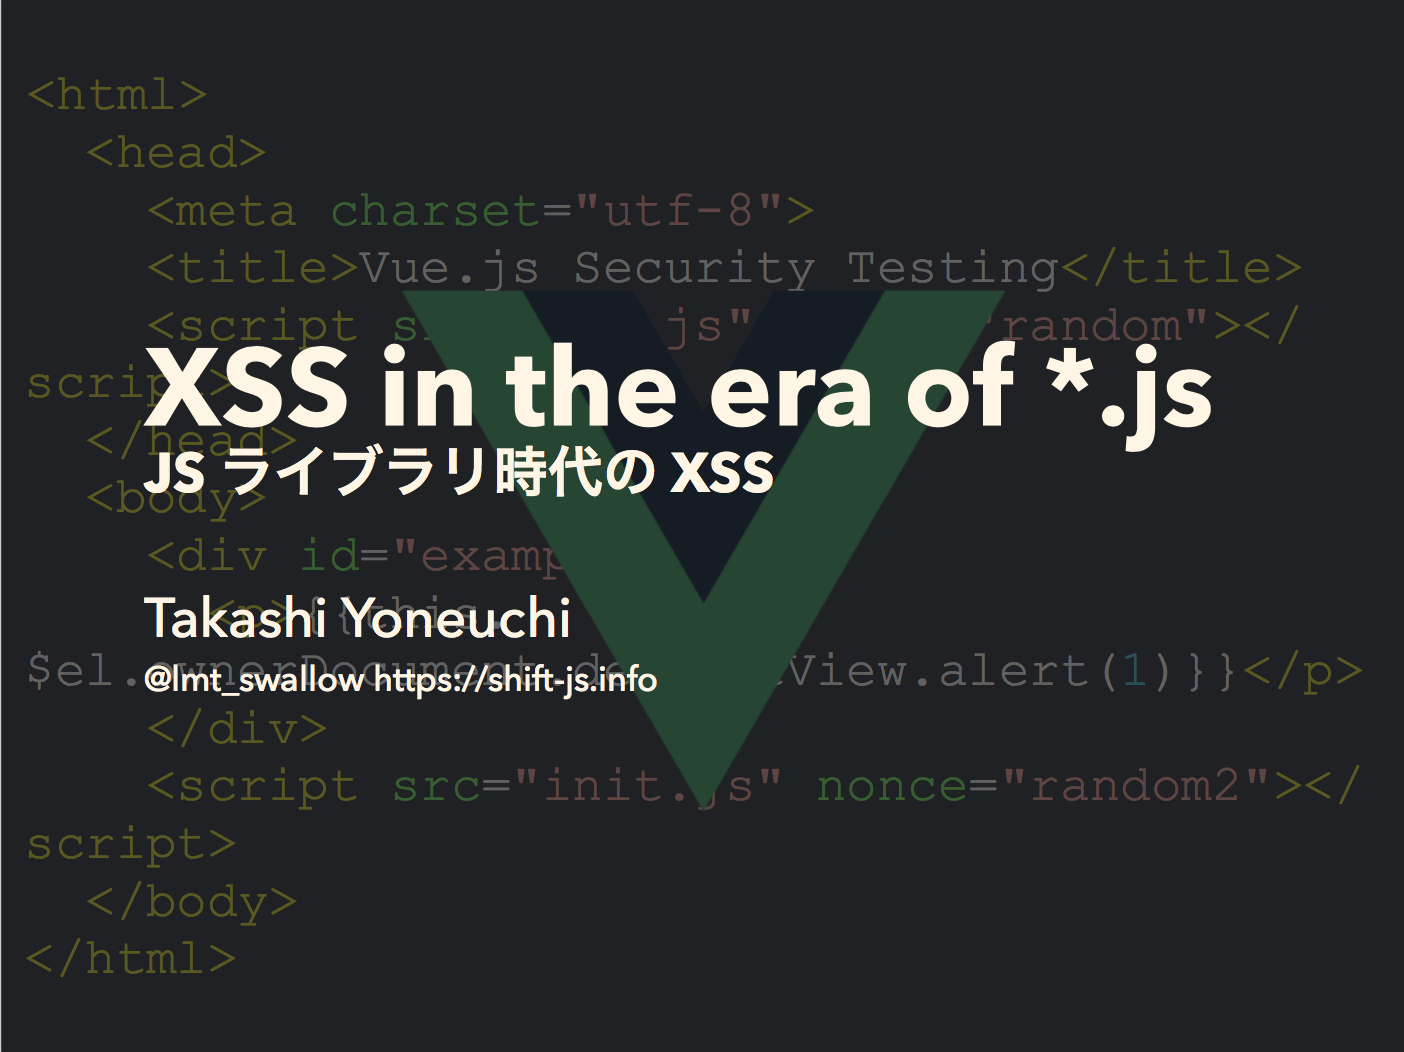 XSS in the era of *.js